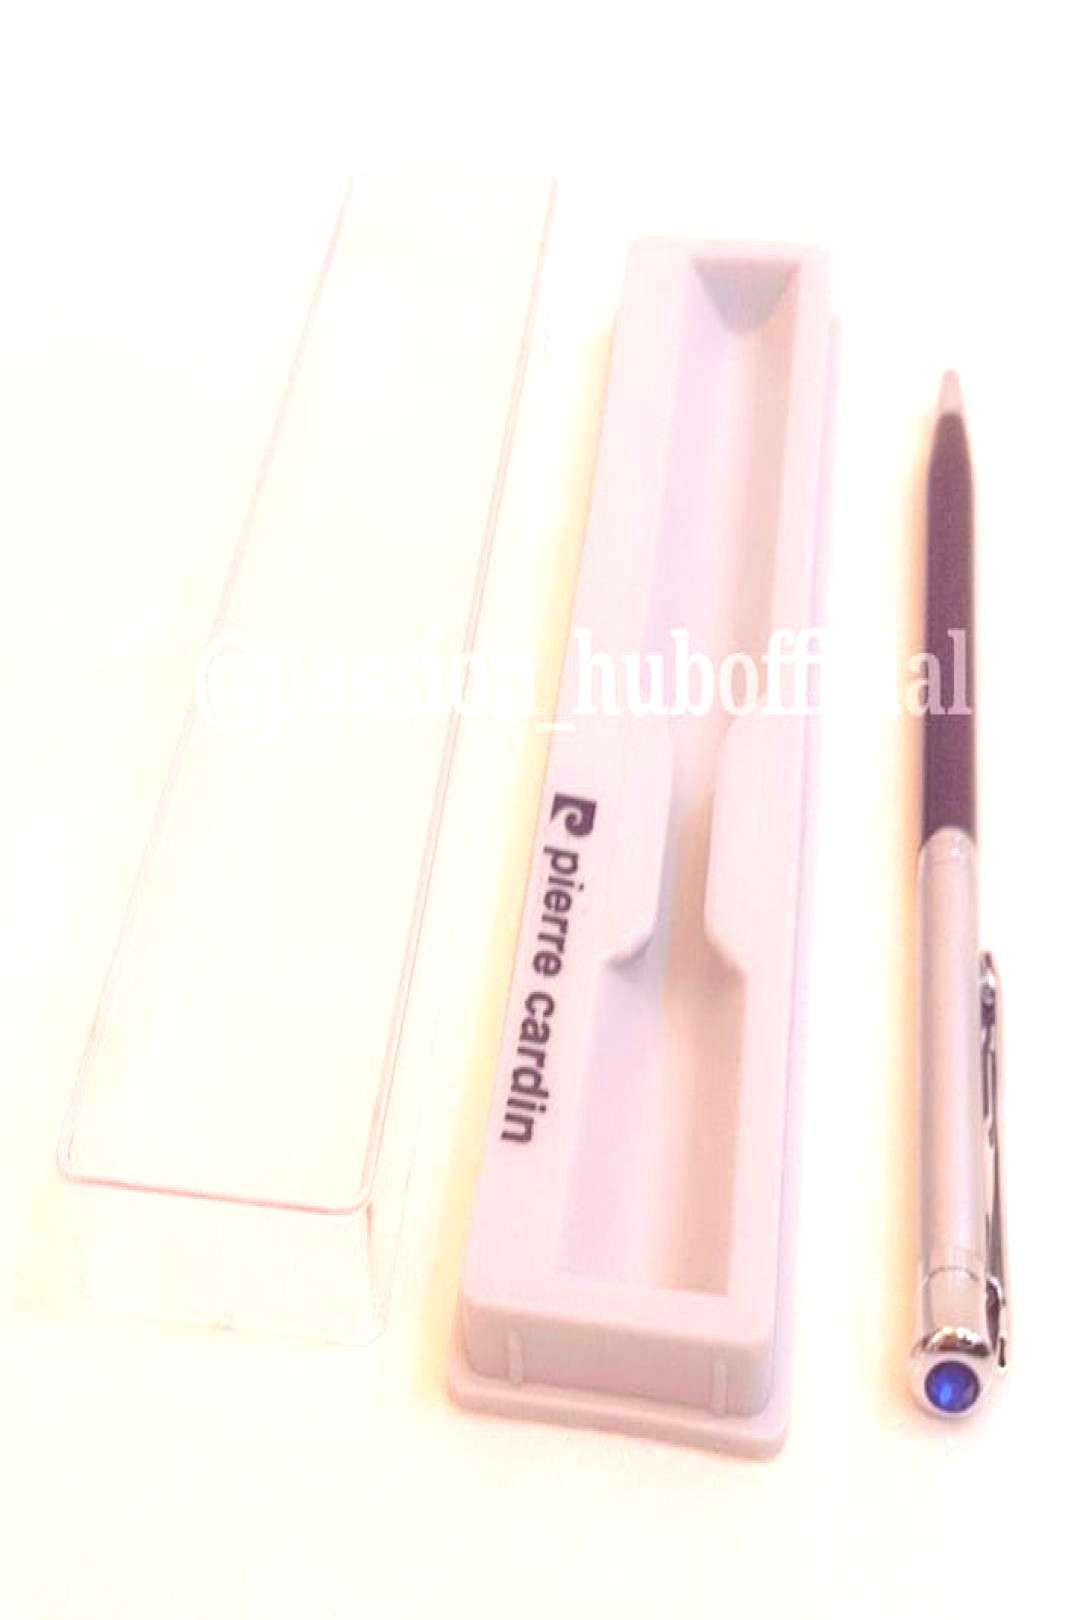 PassionHub on March 16 2020You can find Pens and more on our website.PassionHub on March 16 2020